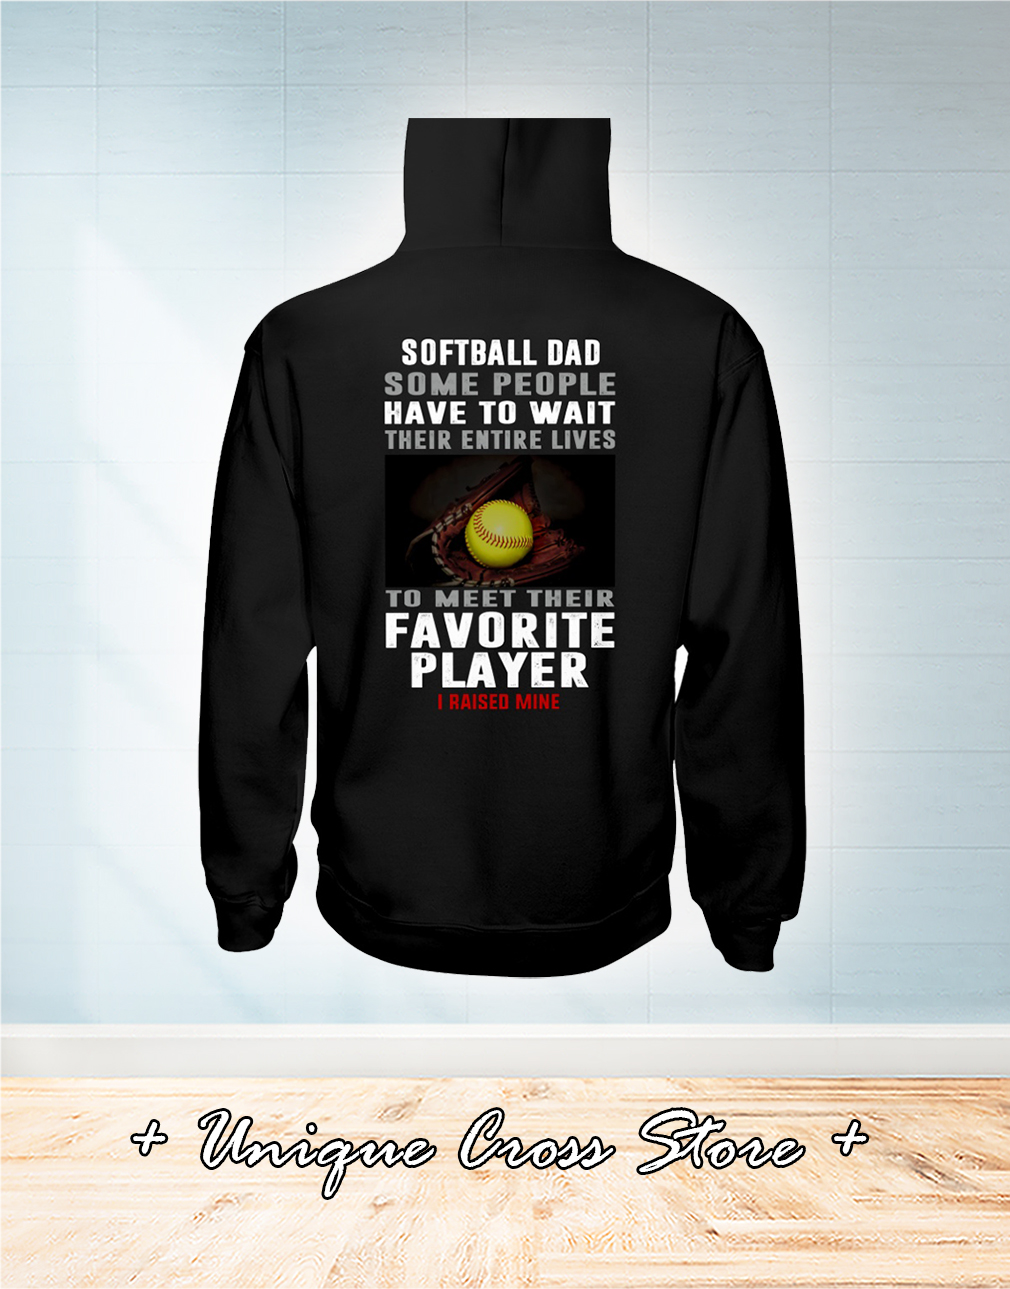 Softball Dad Some People Have To Wait Their Entire Lives To Meet Their Favorite Player I Raised Mine hoodie